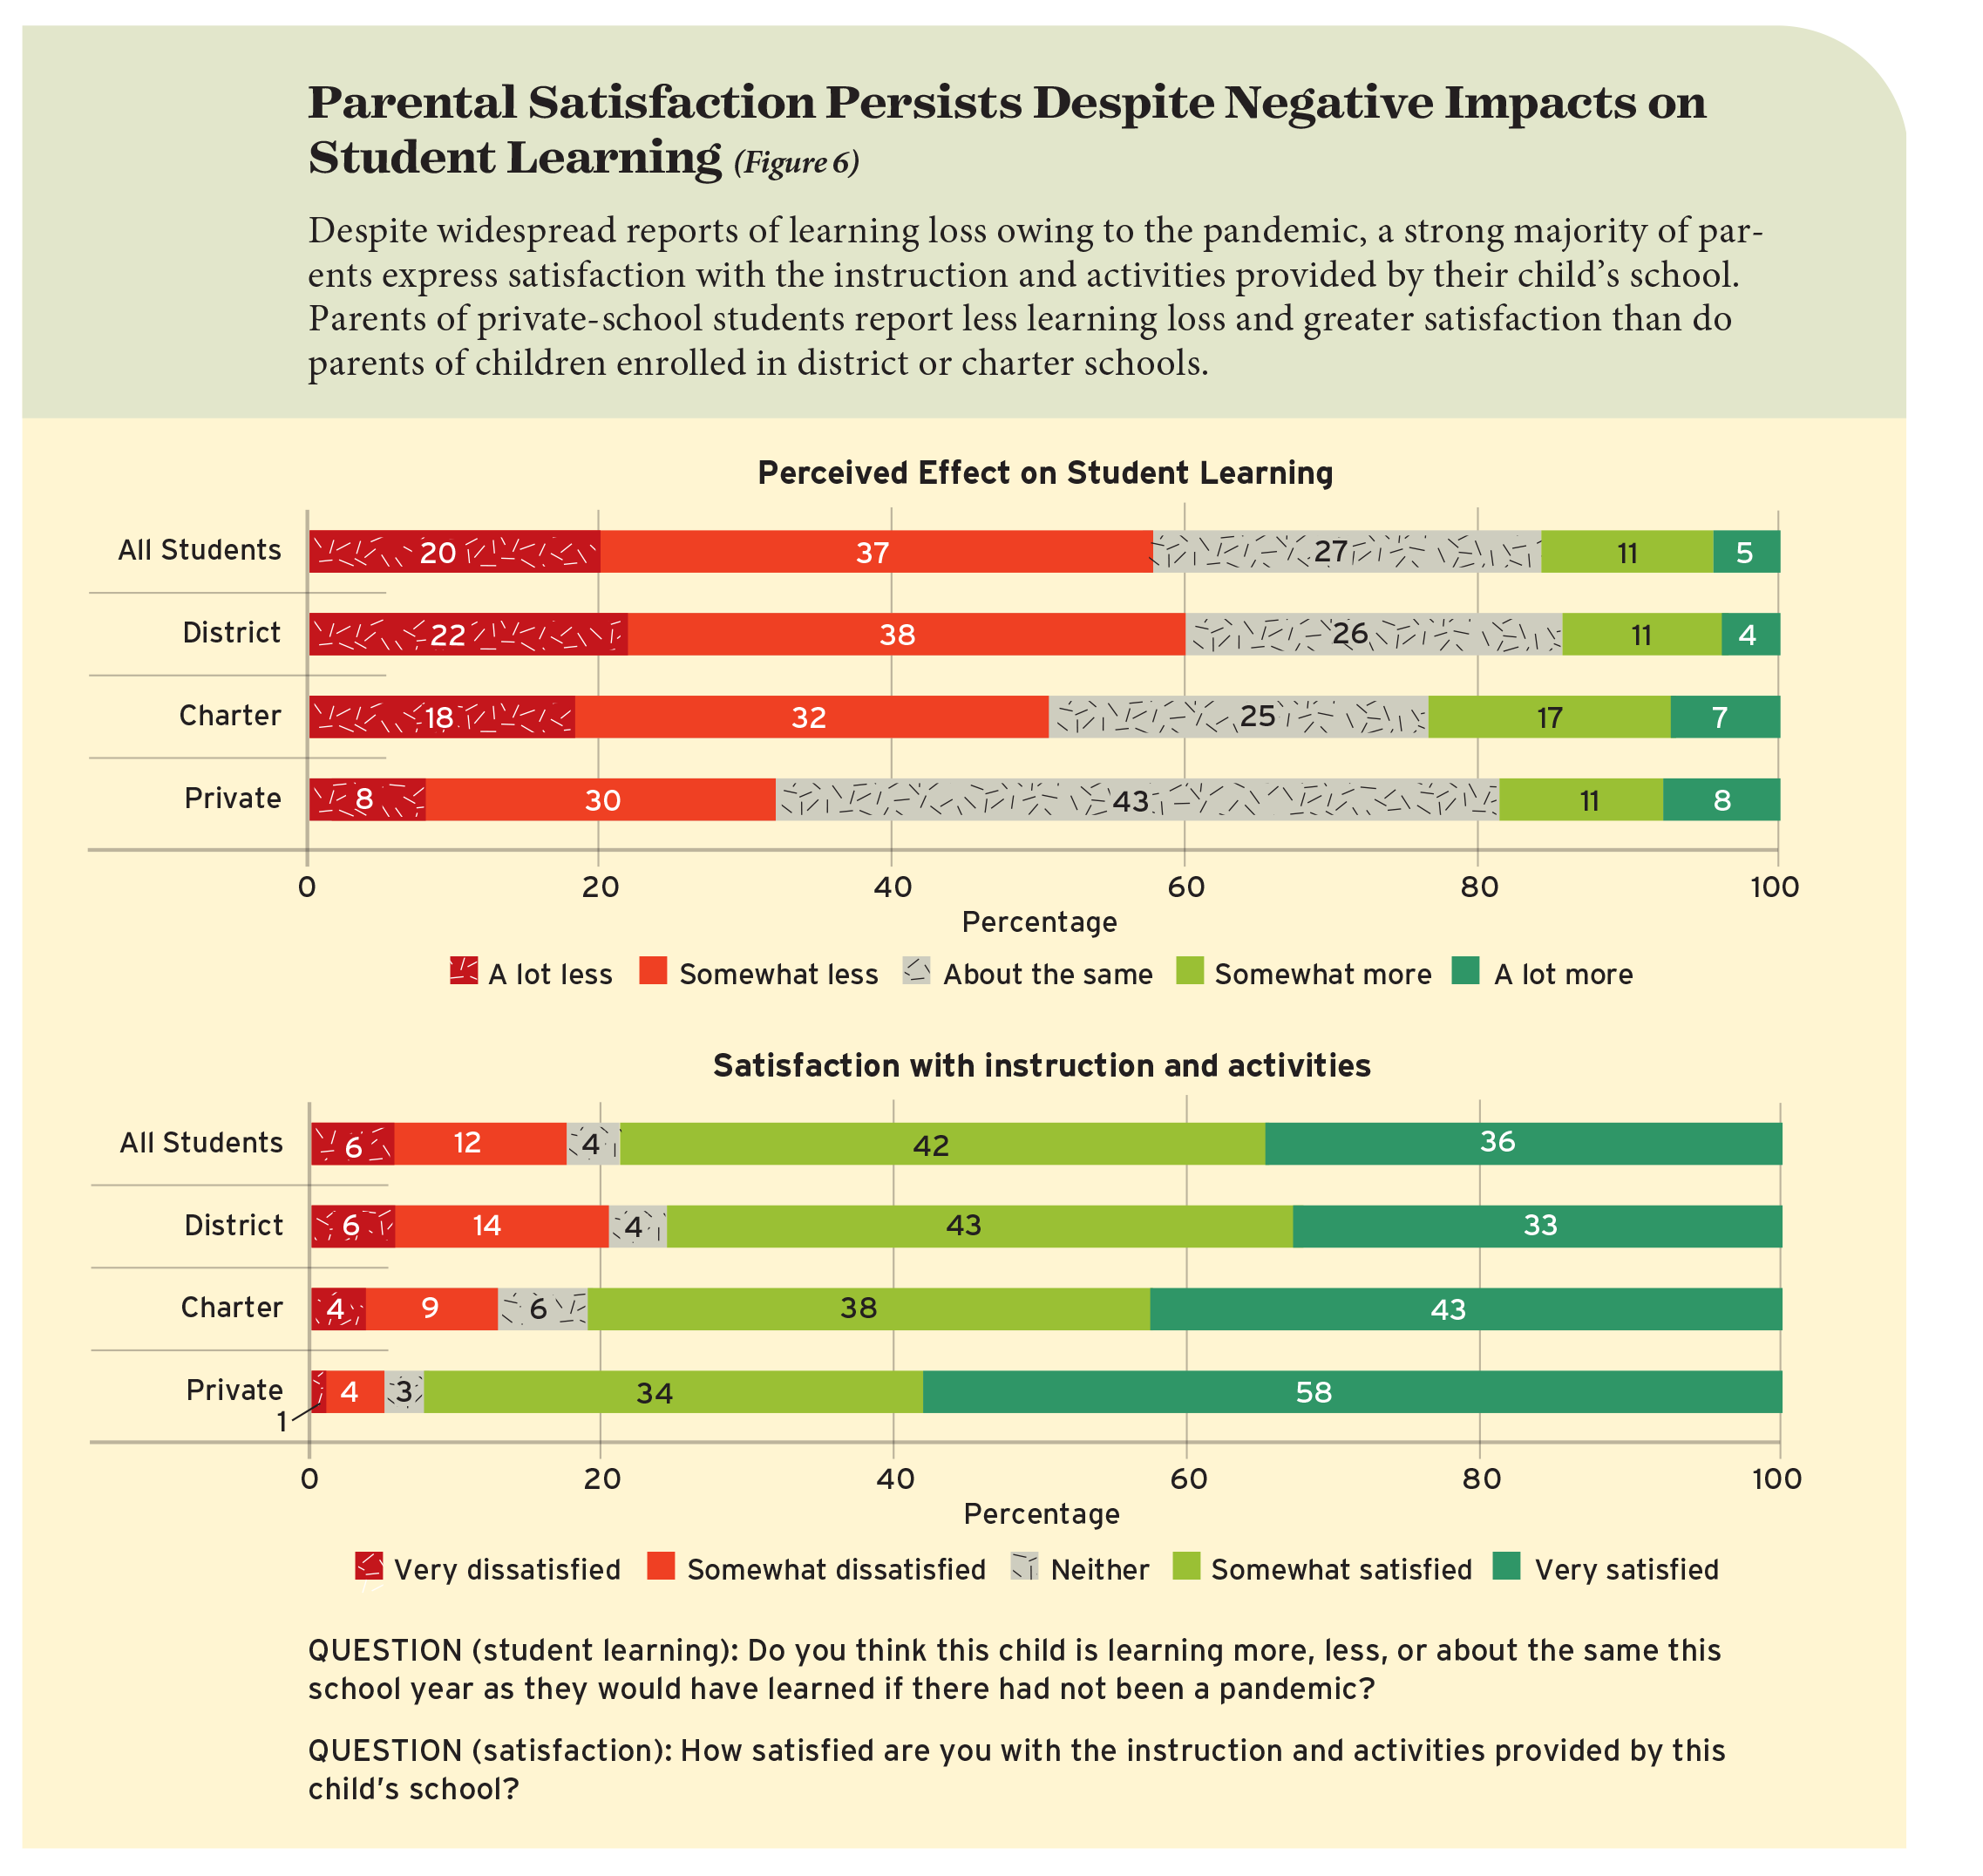 Parental Satisfaction Persists Despite Negative Impacts on Student Learning (Figure 6)